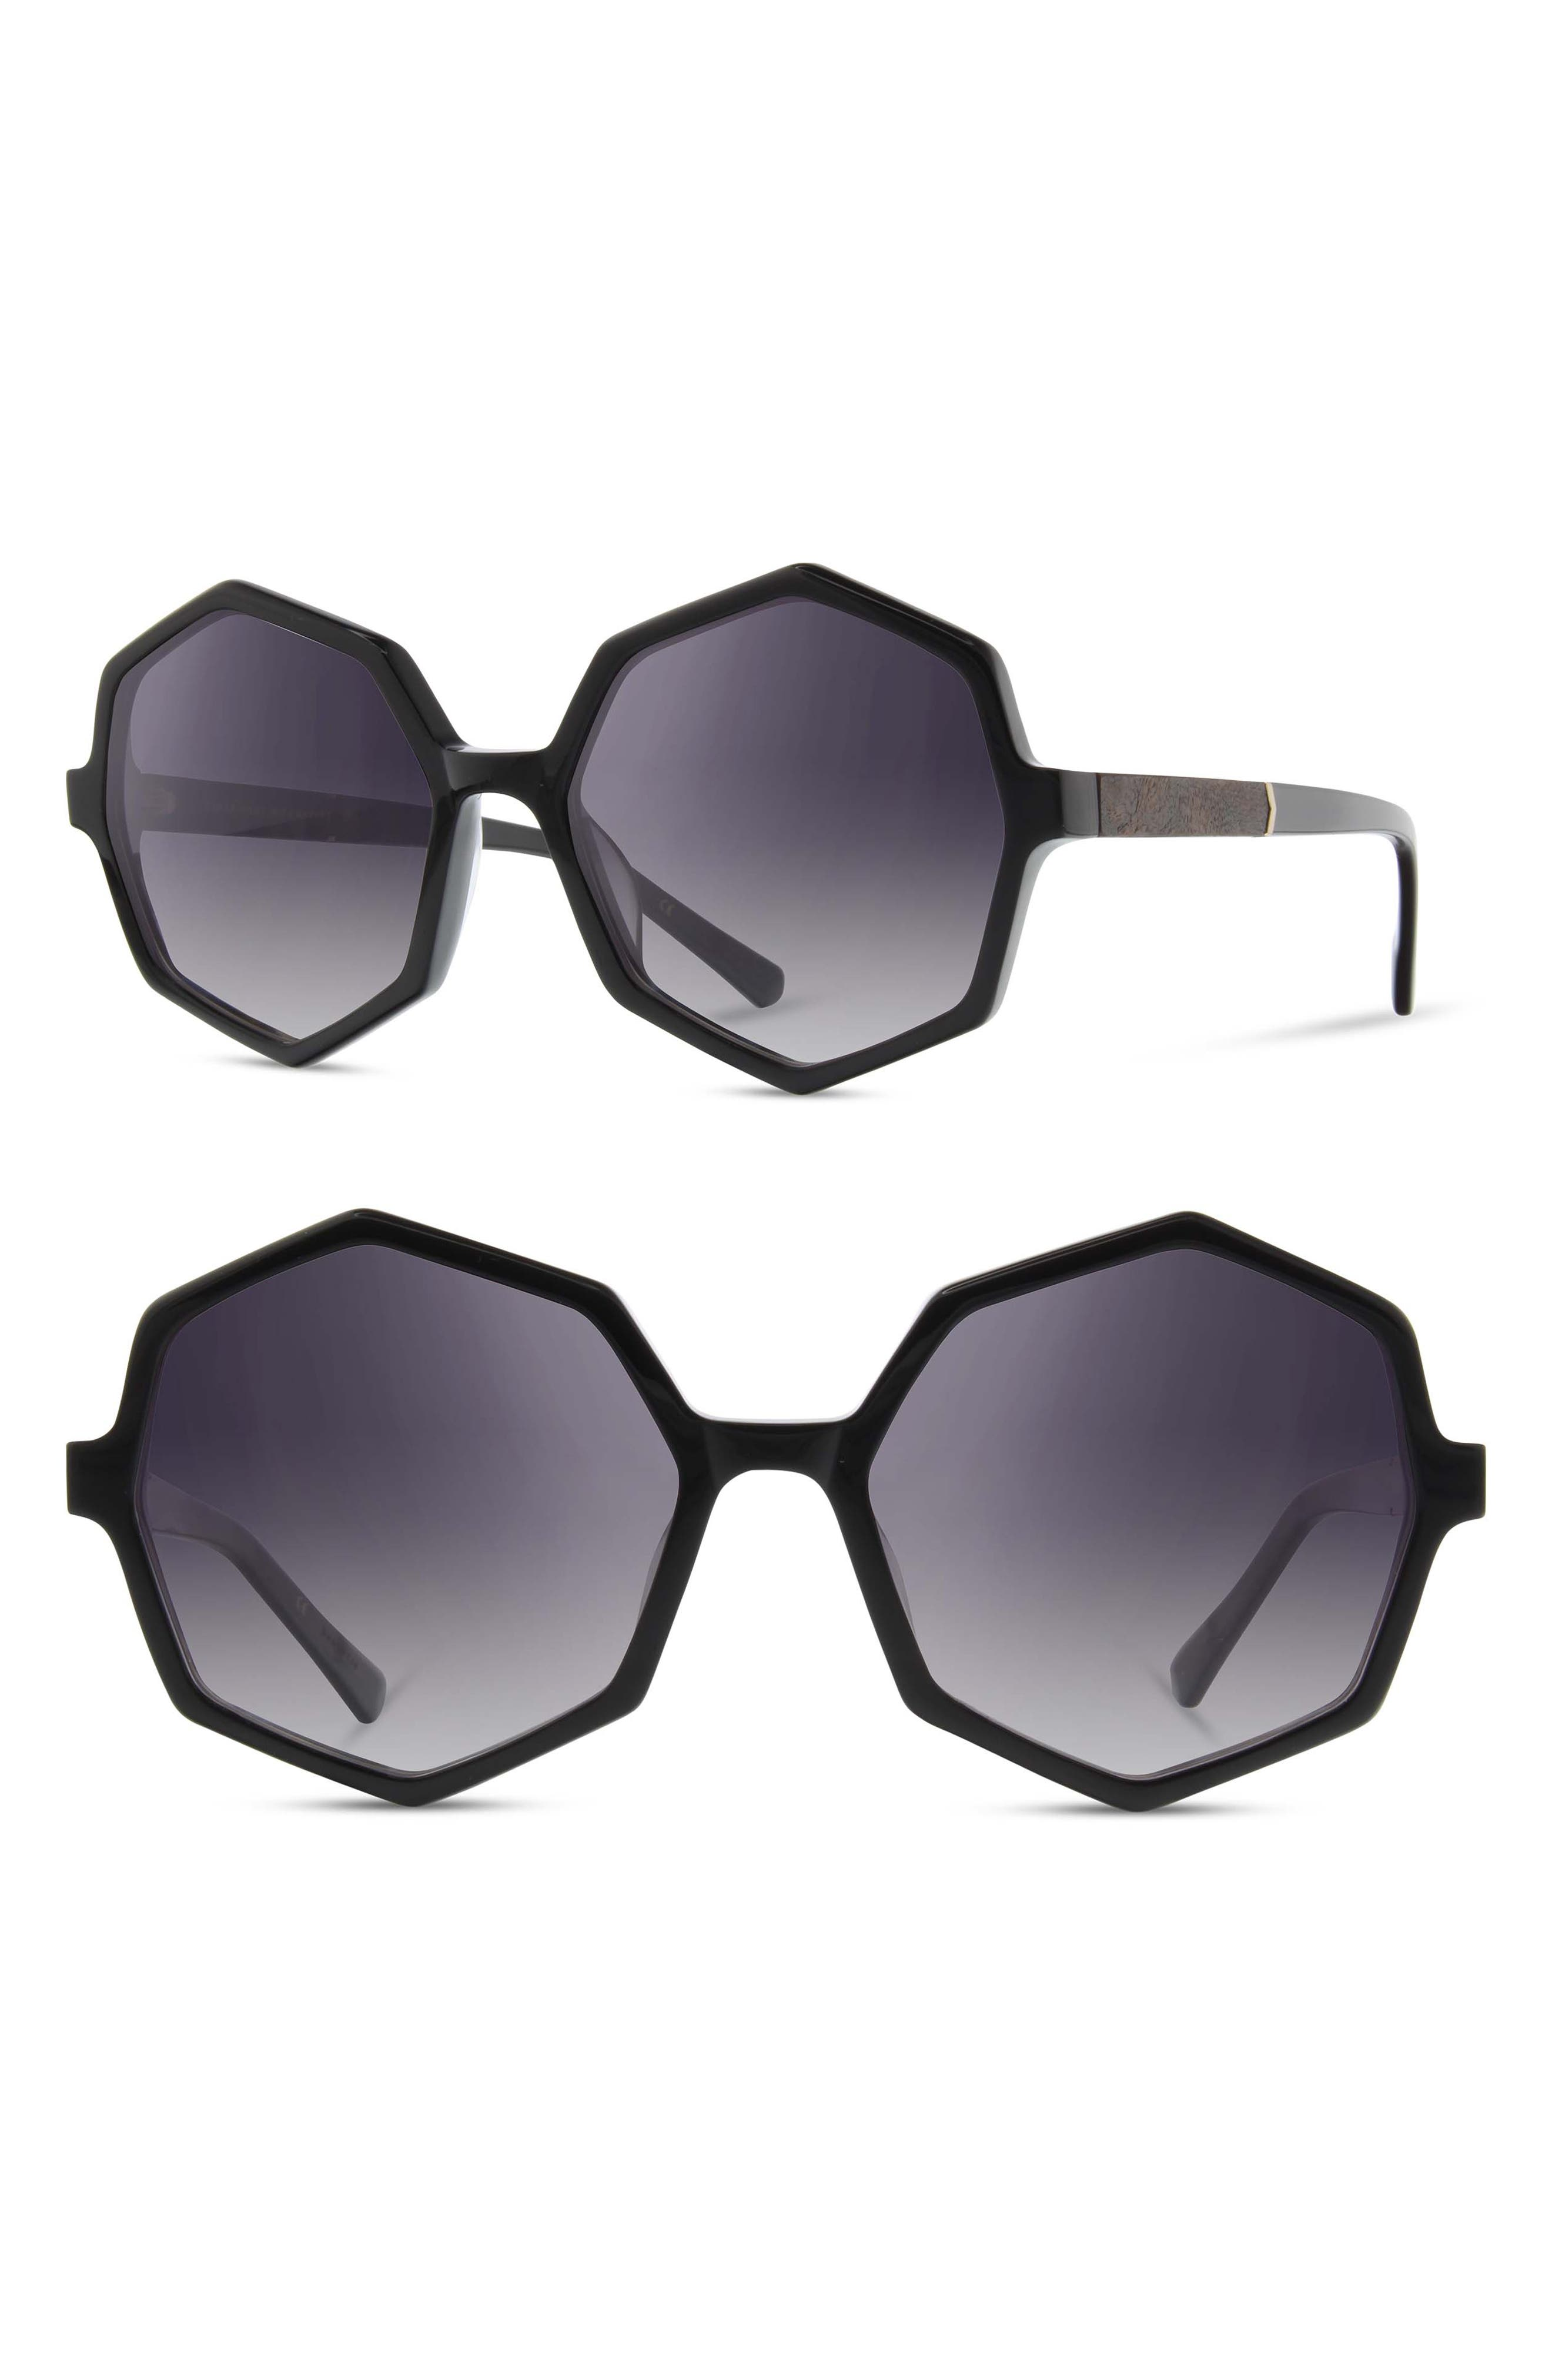 Shwood Aurora 57Mm Sunglasses - Black/ Elm Burl/ Grey Fade